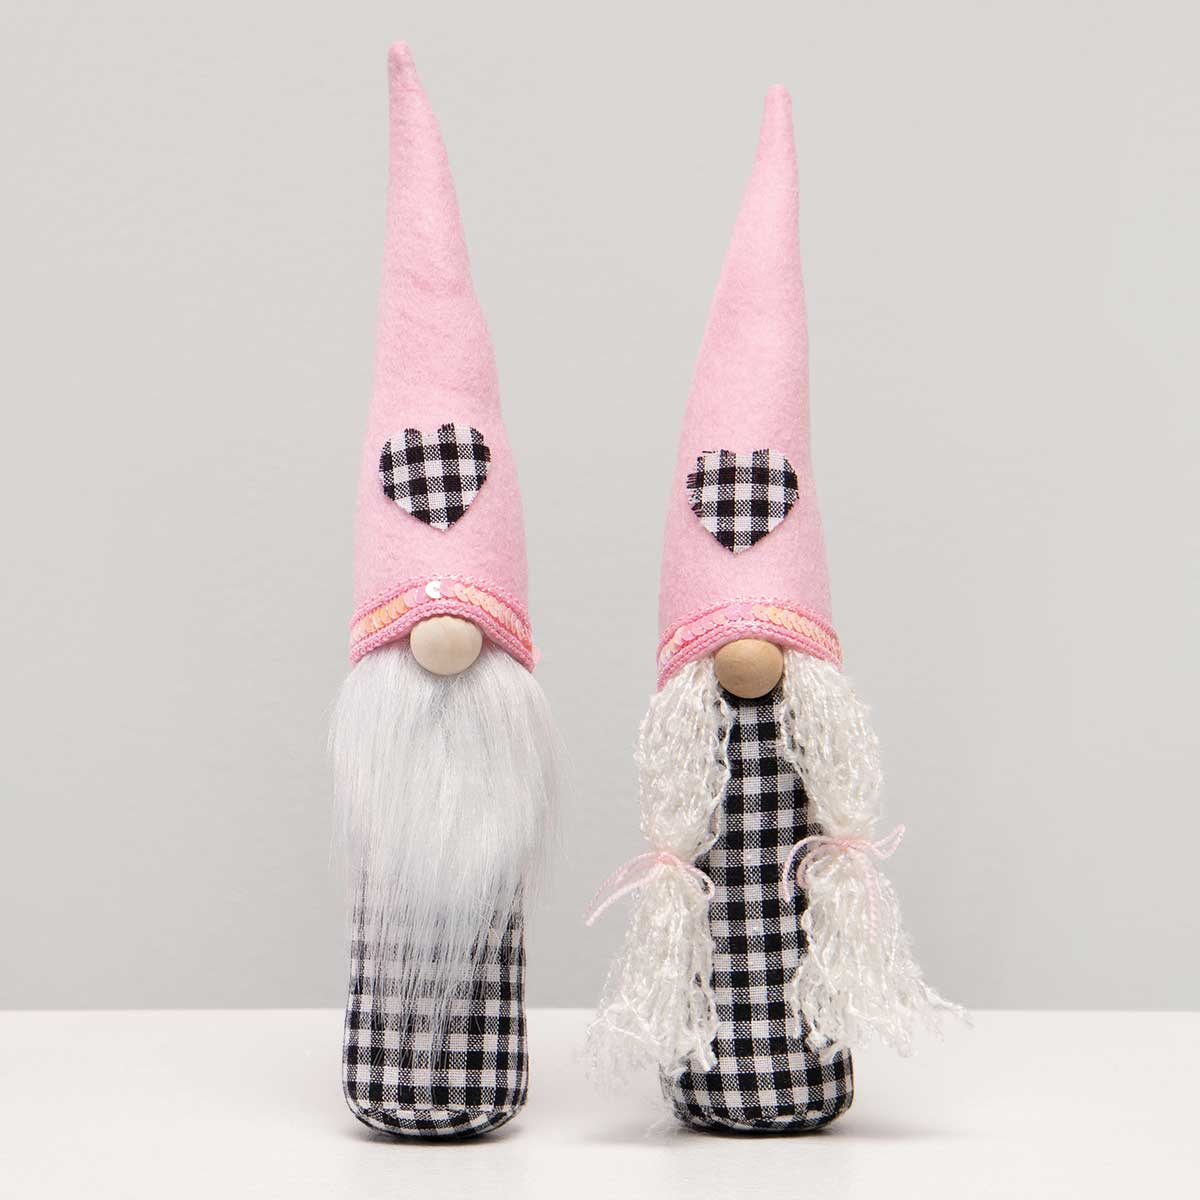 ROMEO AND JULIET GNOME WITH WHITE BEARD/BRAIDS, WOOD NOSE, PINK